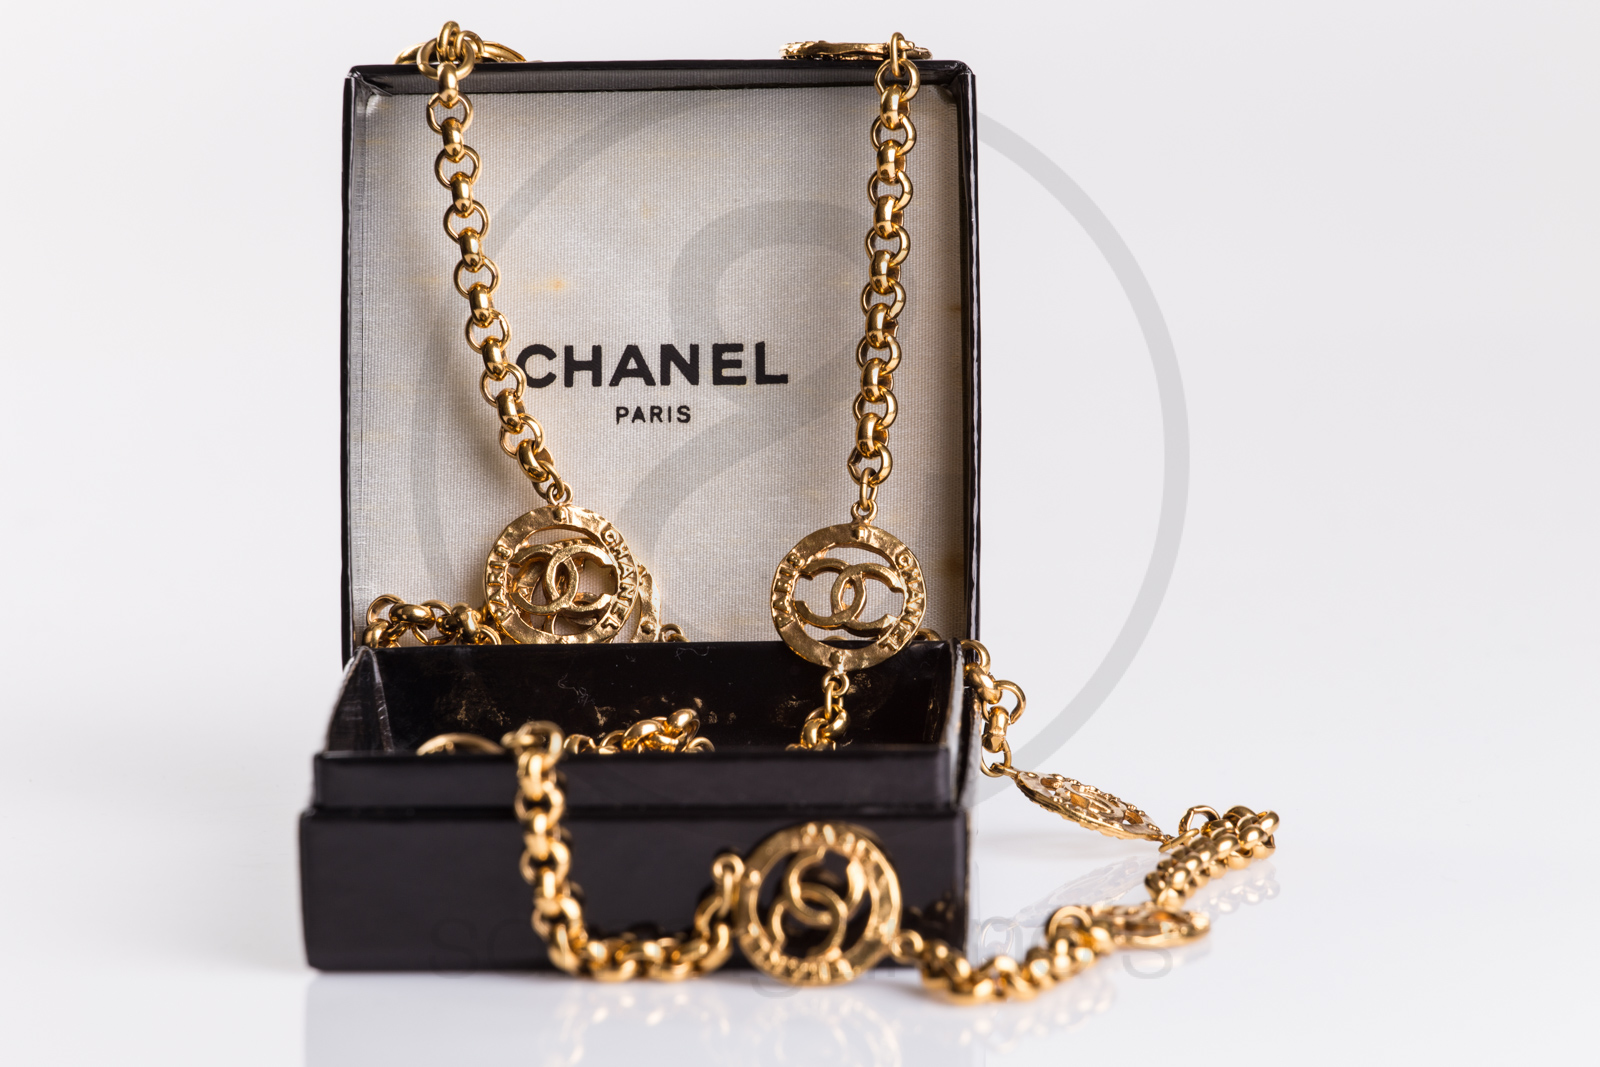 Chanel Chain necklace Sammy Ninos Store